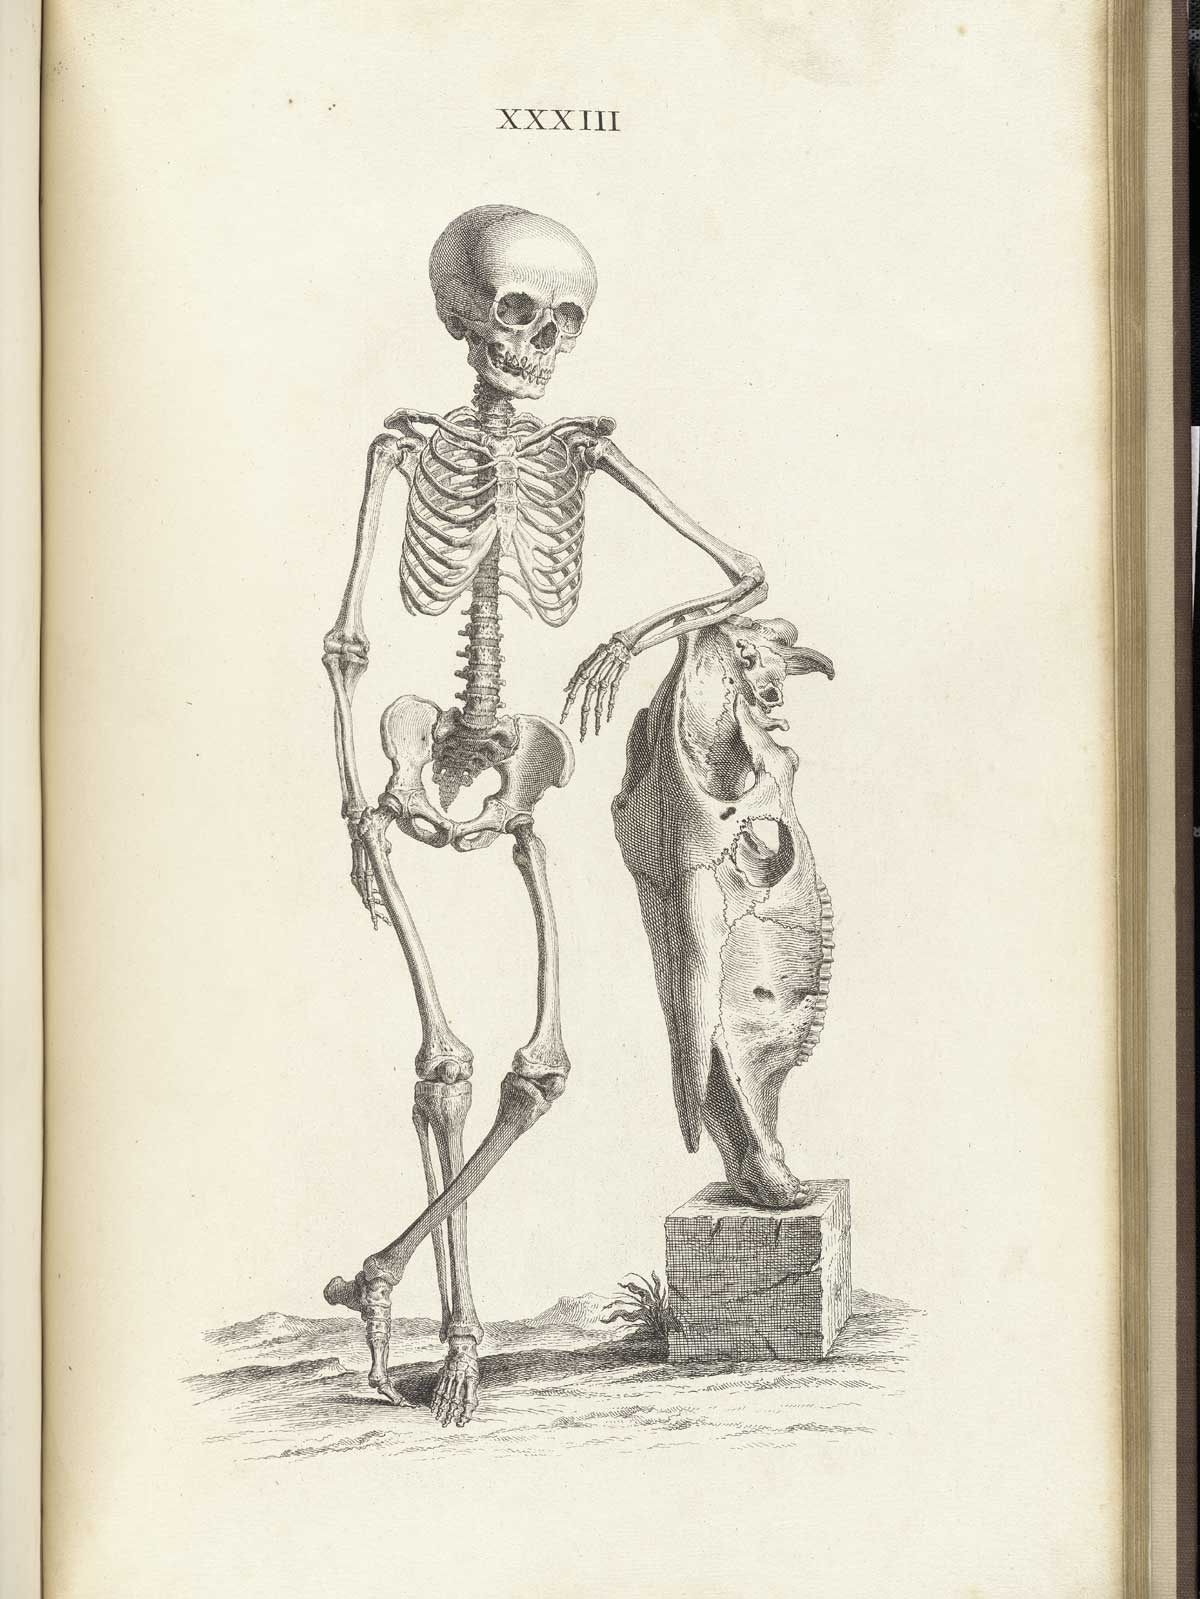 Drawn skeleton old Historical Engraving leaning of the